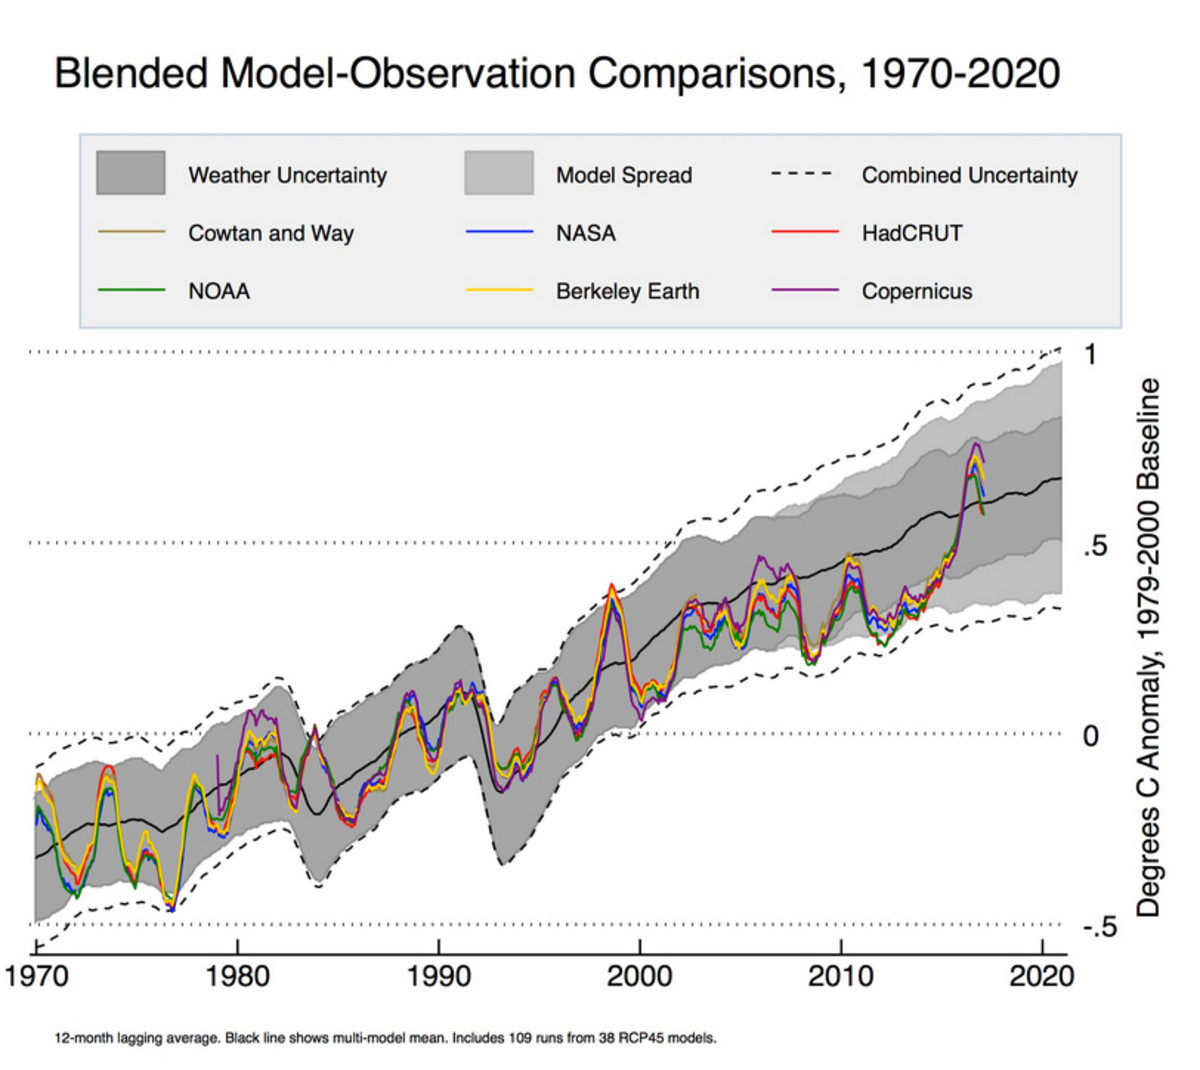 Updated model-observation comparison, courtesy of Dr. Zeke Hausfeather of BEST.